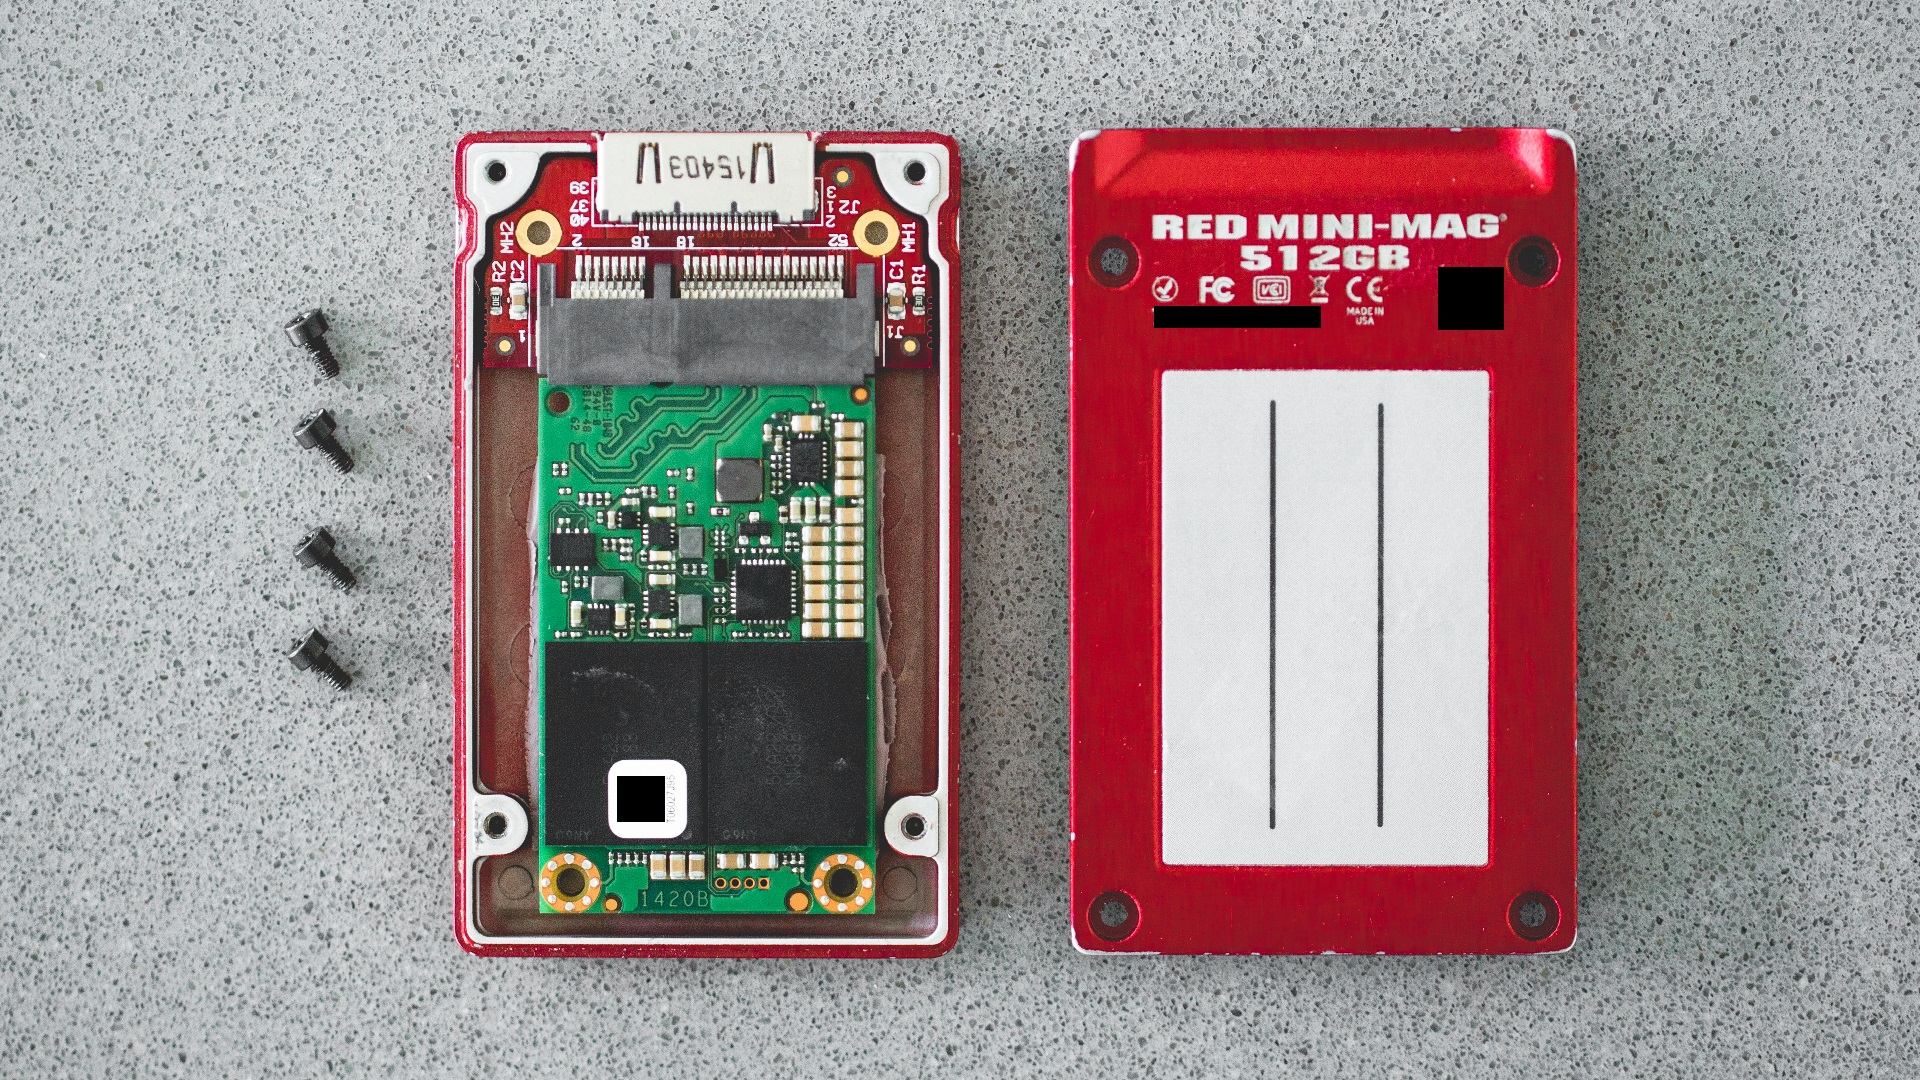 What's Inside a RED Mini-Mag? The Controversy & Jarred